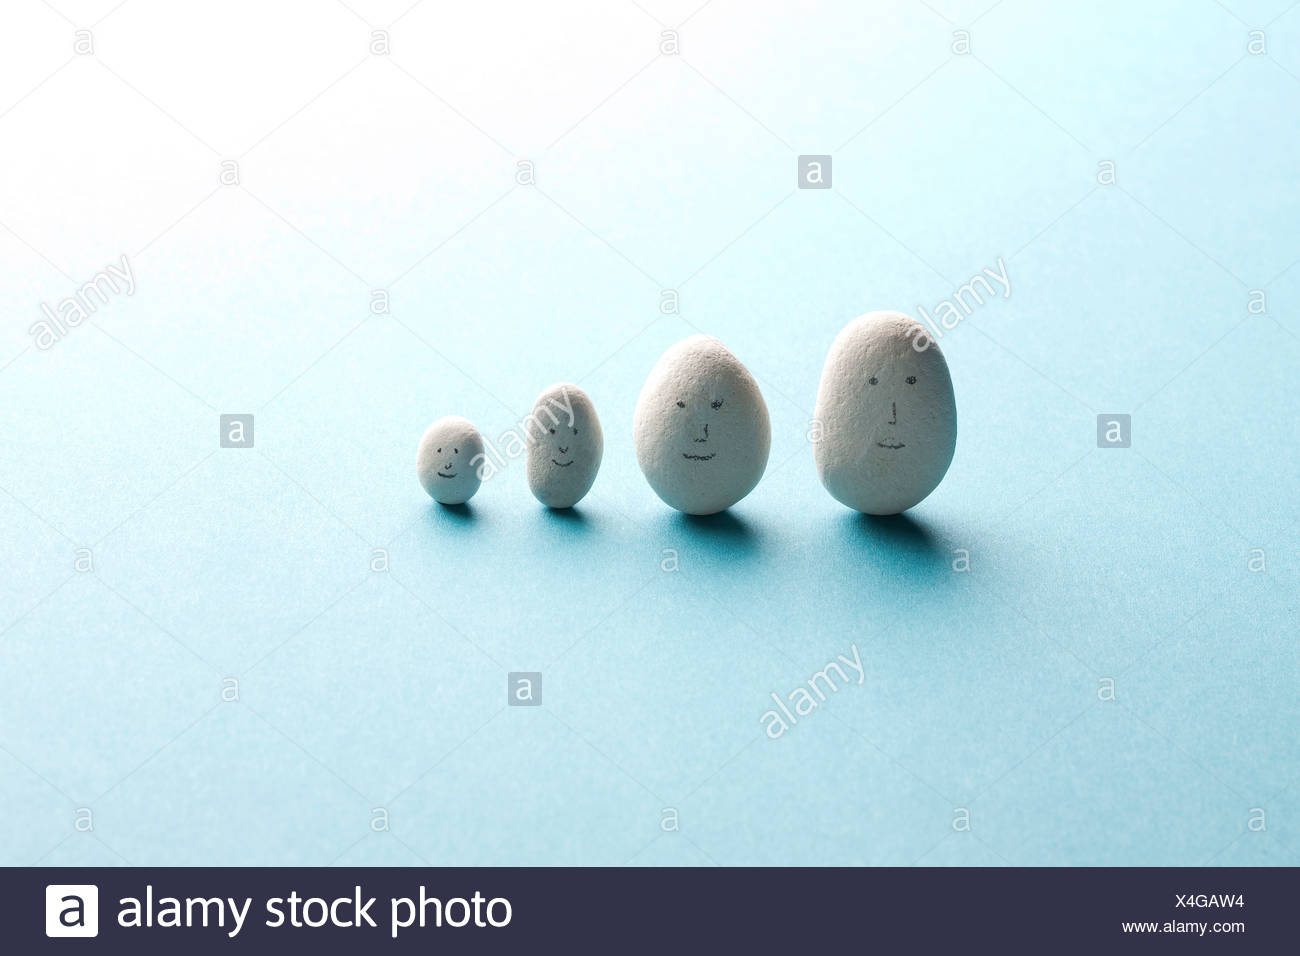 White stones with faces drawn on them - Stock Image